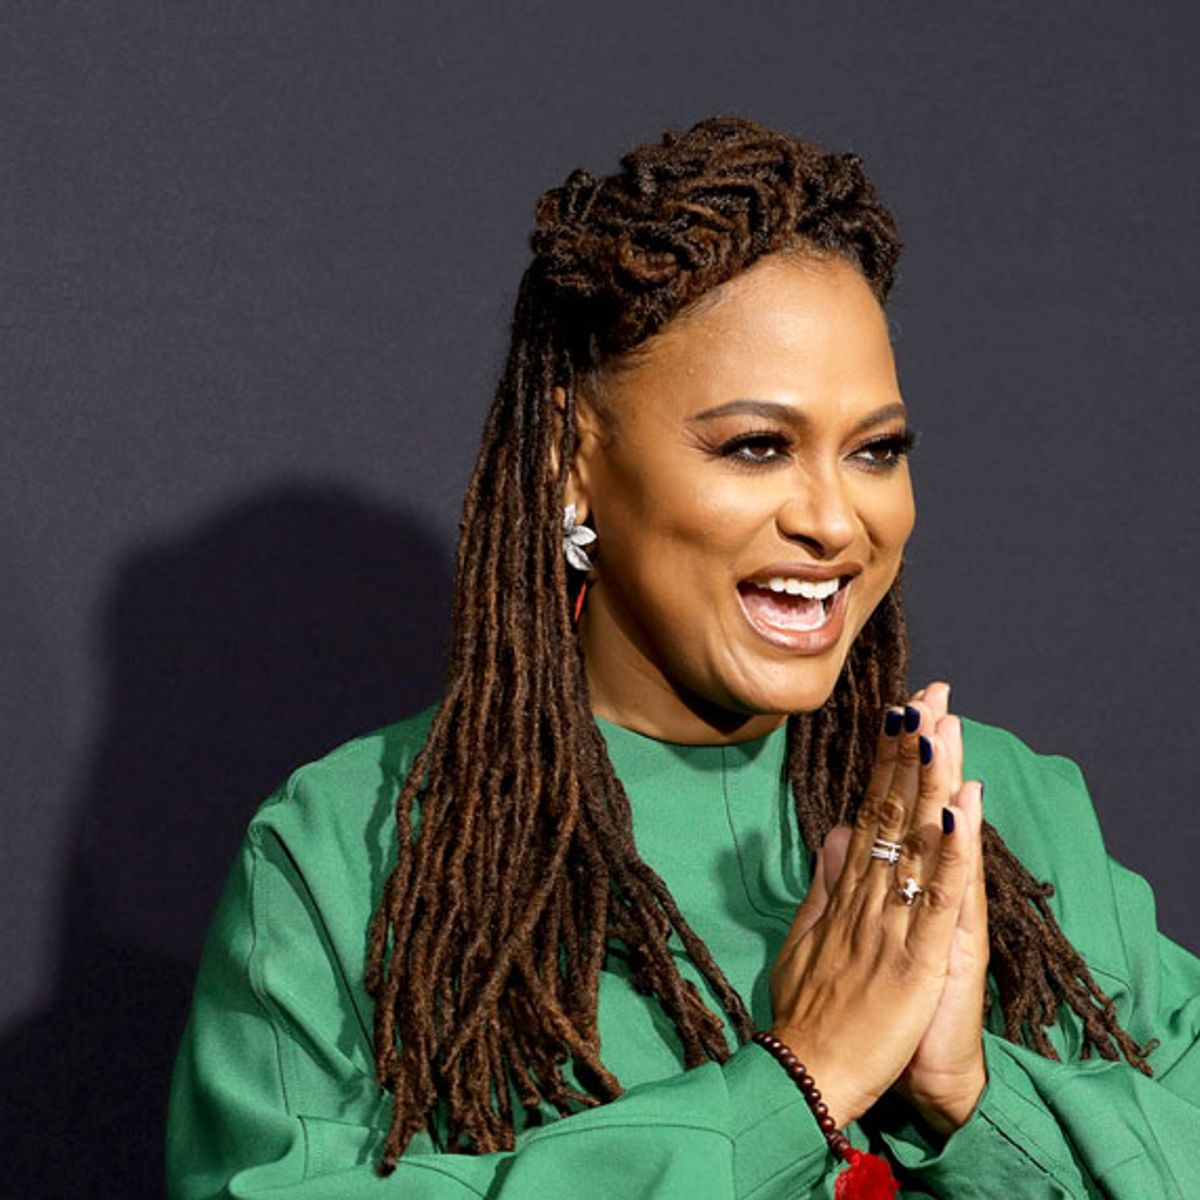 Ava DuVernay isn't waiting on reparations or shiny campaign promises